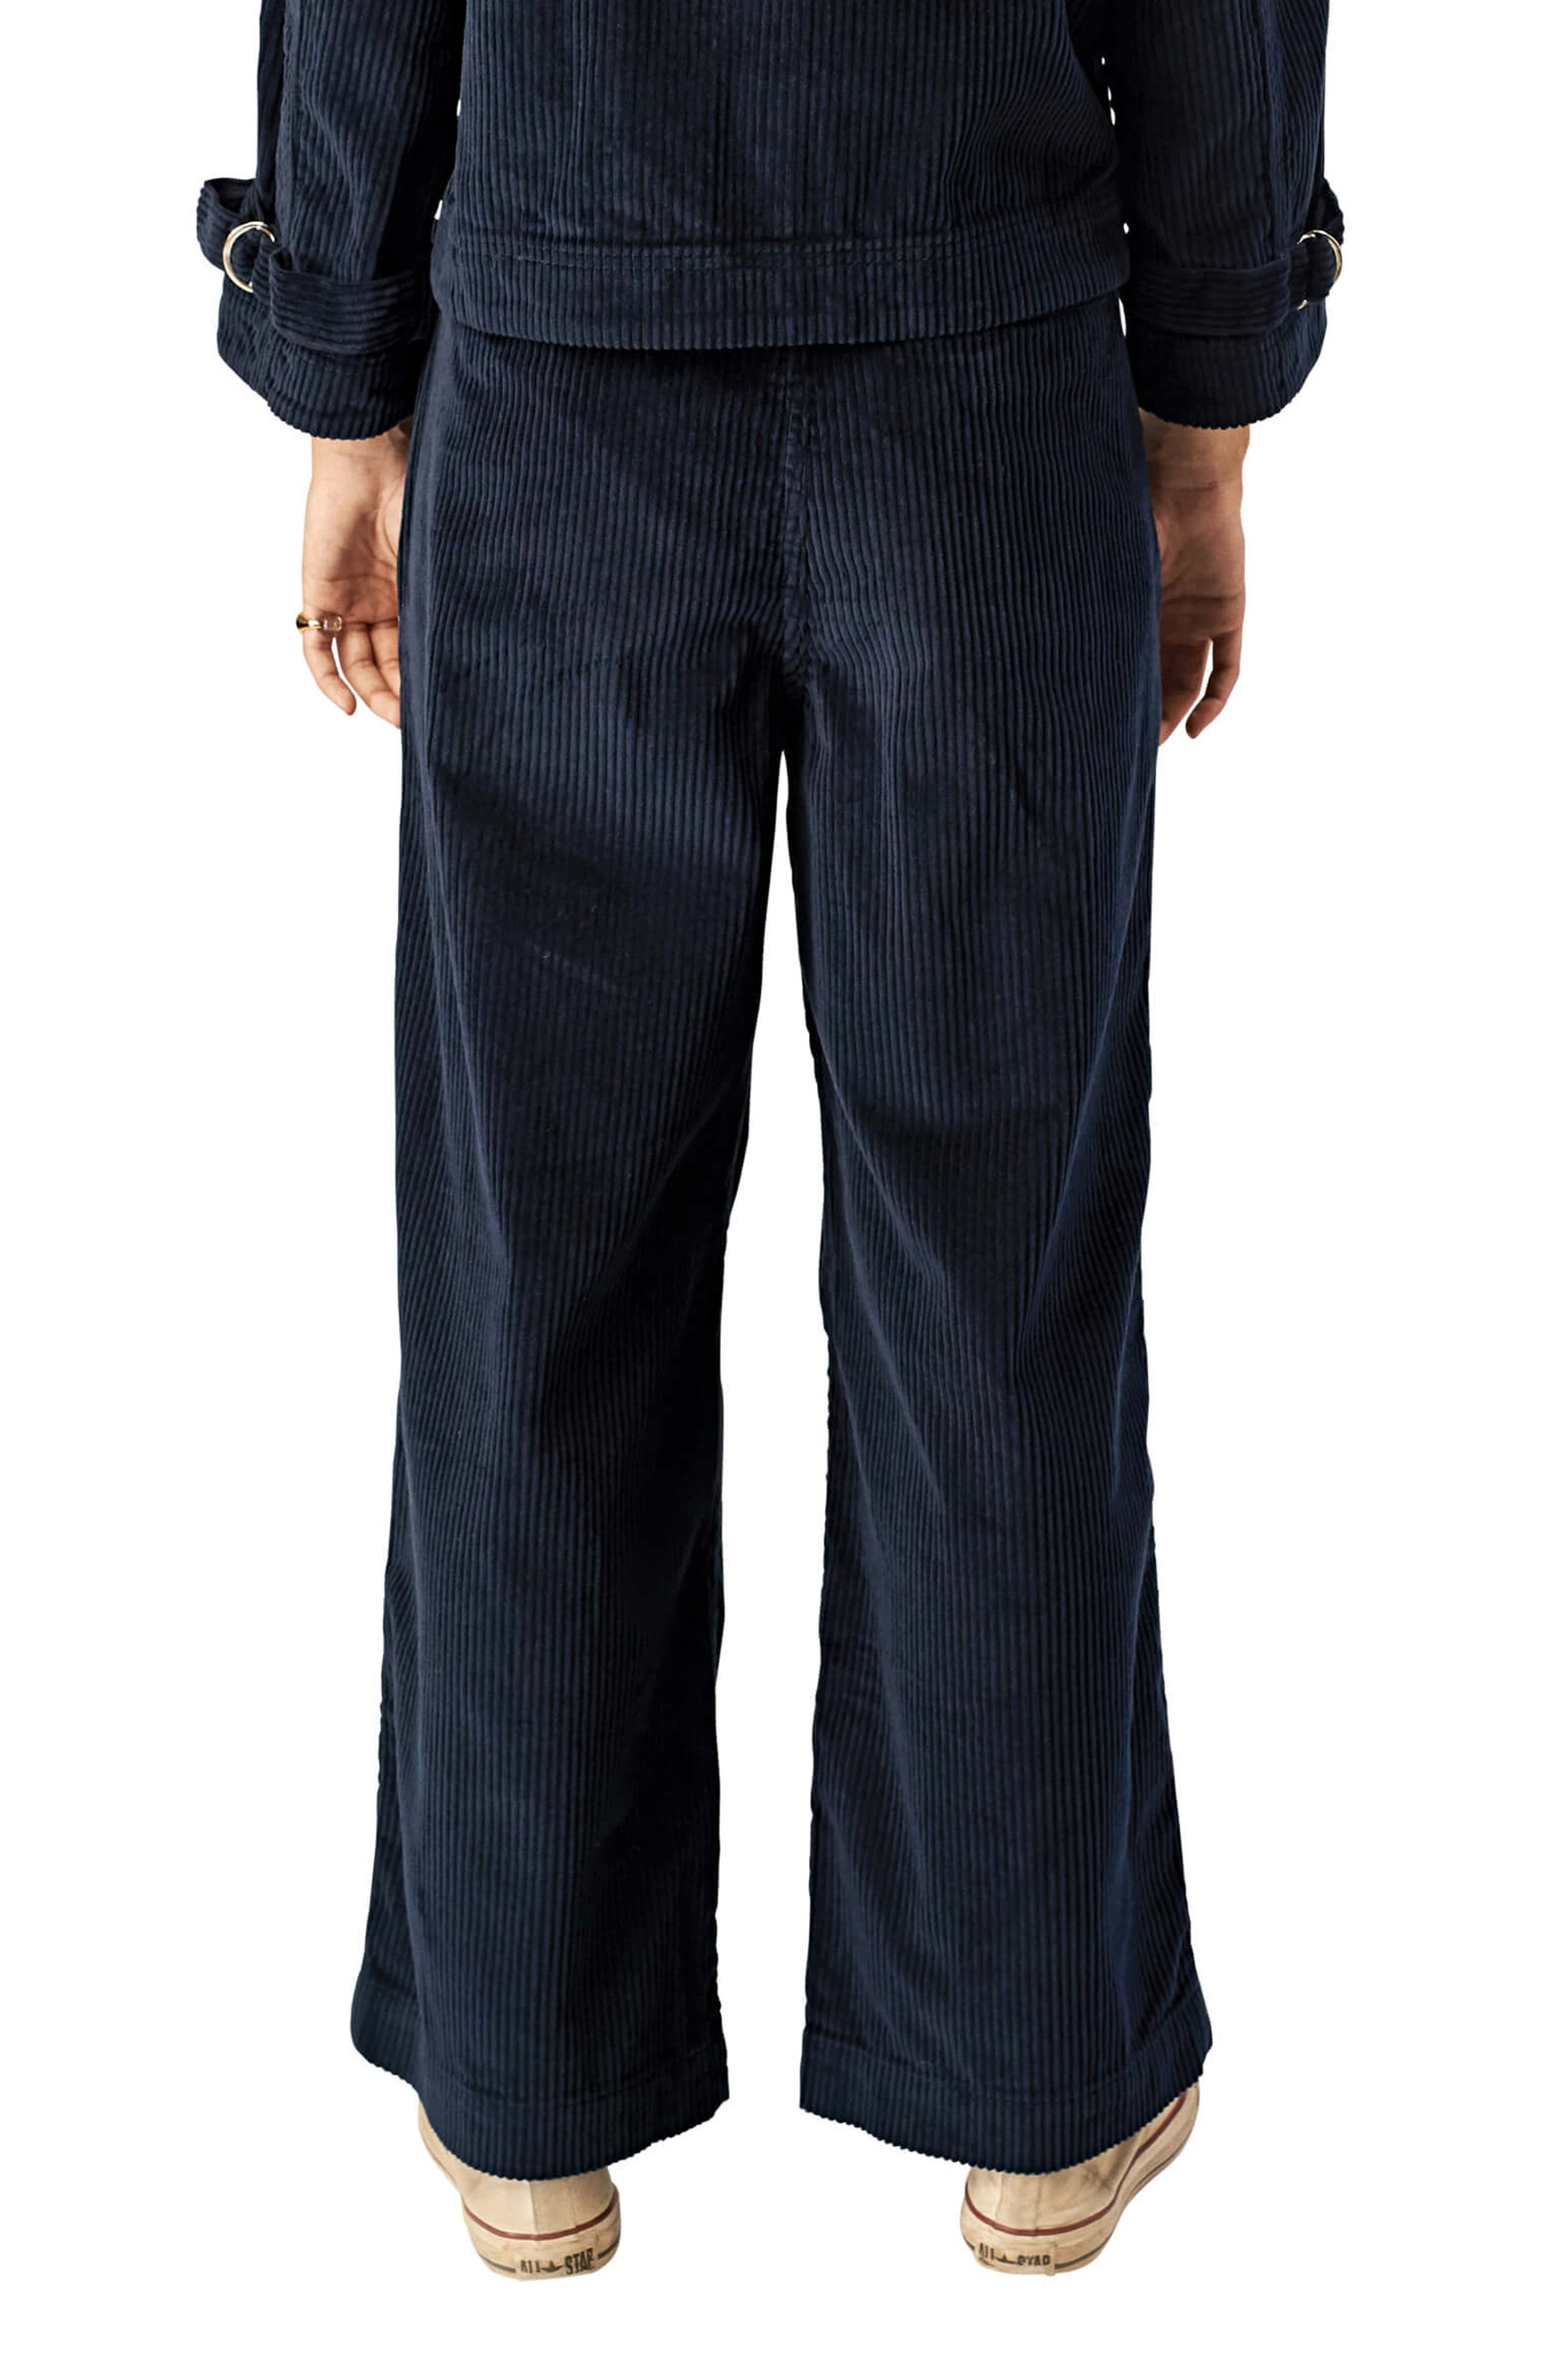 27755ec15 Women's Corduroy Pants & Leggings | Nordstrom